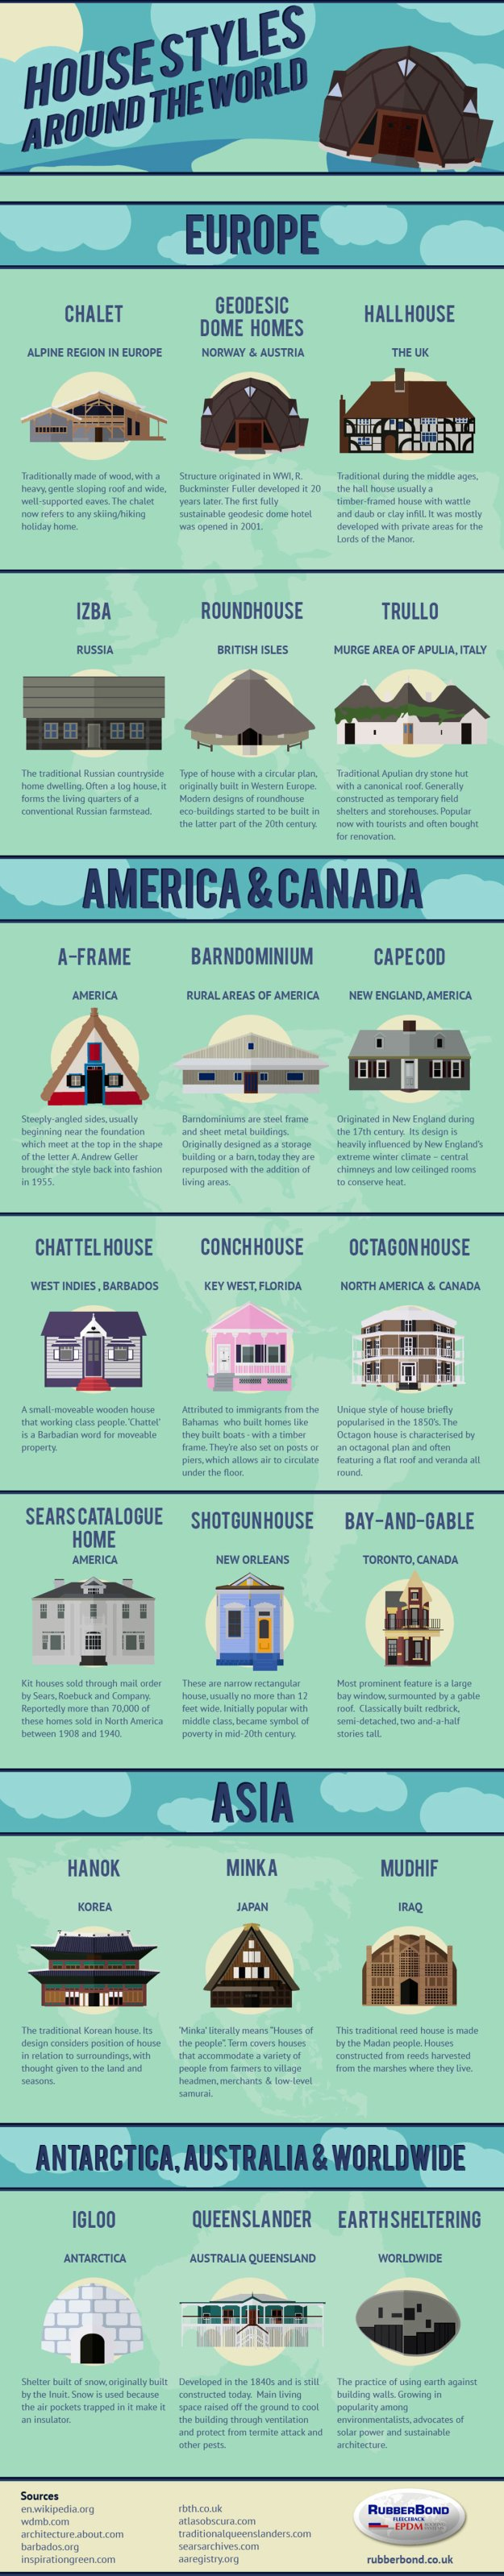 Housestyles Around the World